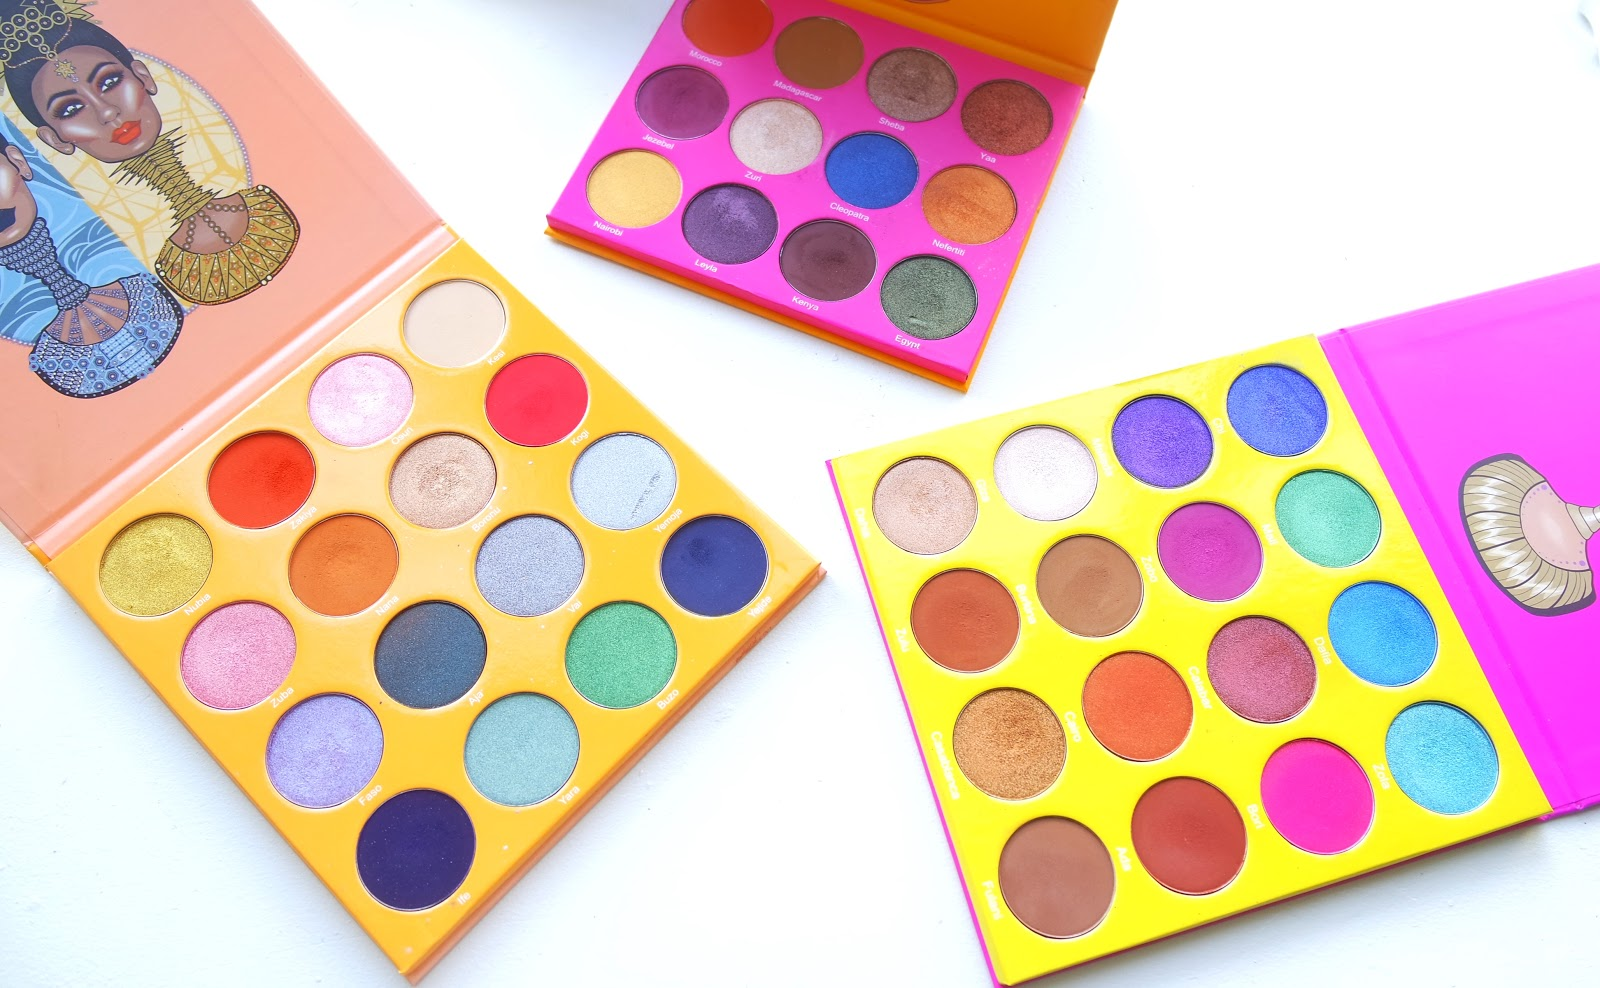 Juvia's Place Cosmetics Eyeshadow palettes